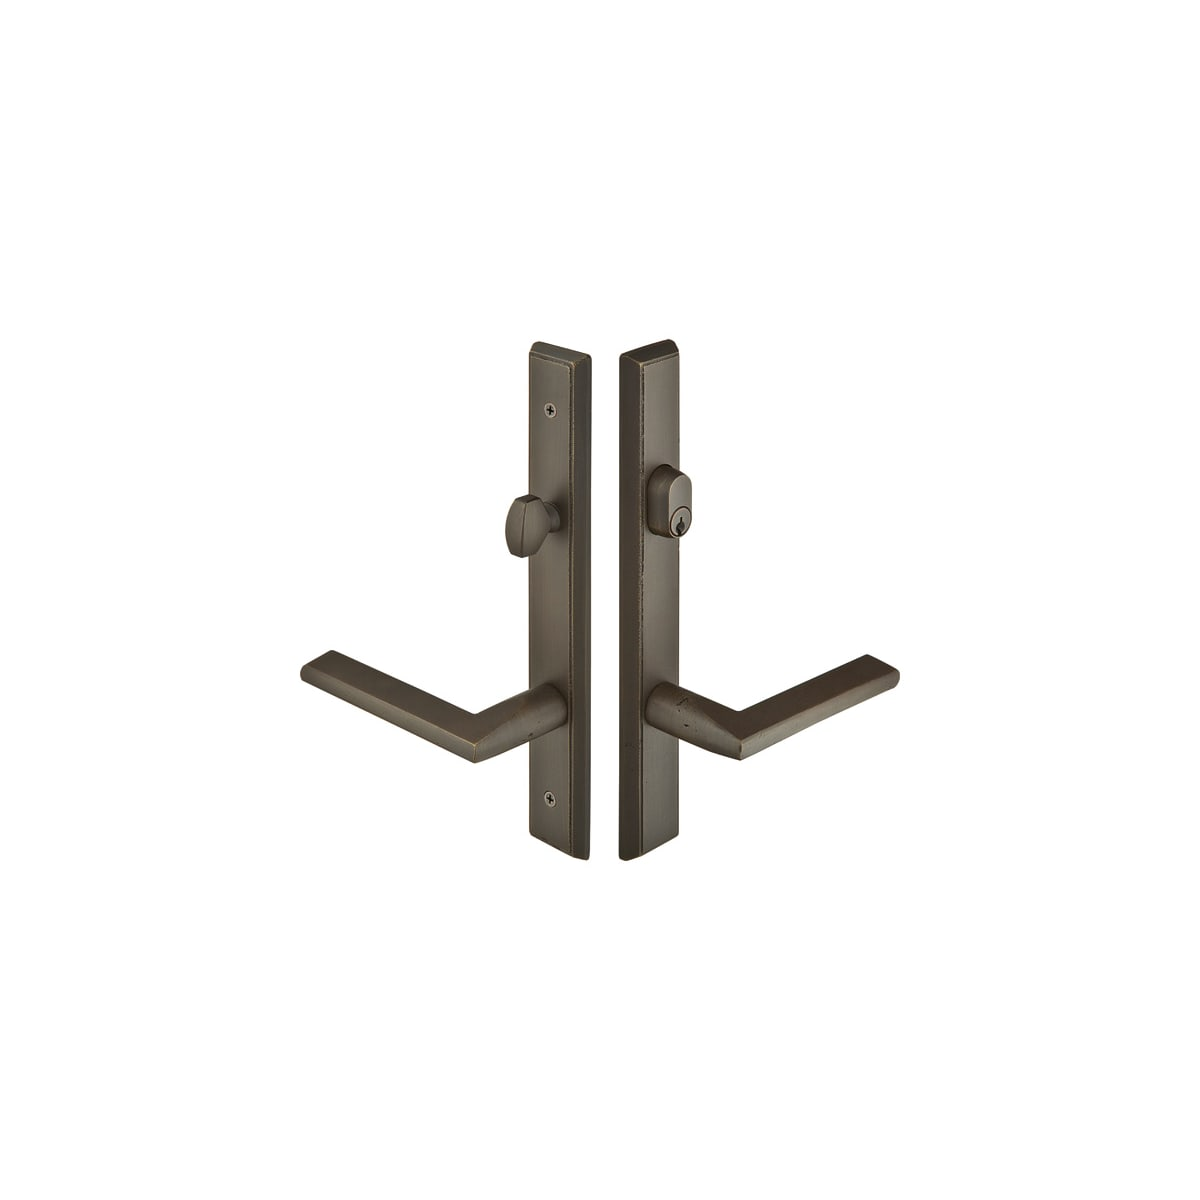 Emtek Sandcast Bronze Door Configuration 3 Inactive Multi Point Narrow Trim Lever Set with American Cylinder Above Handle